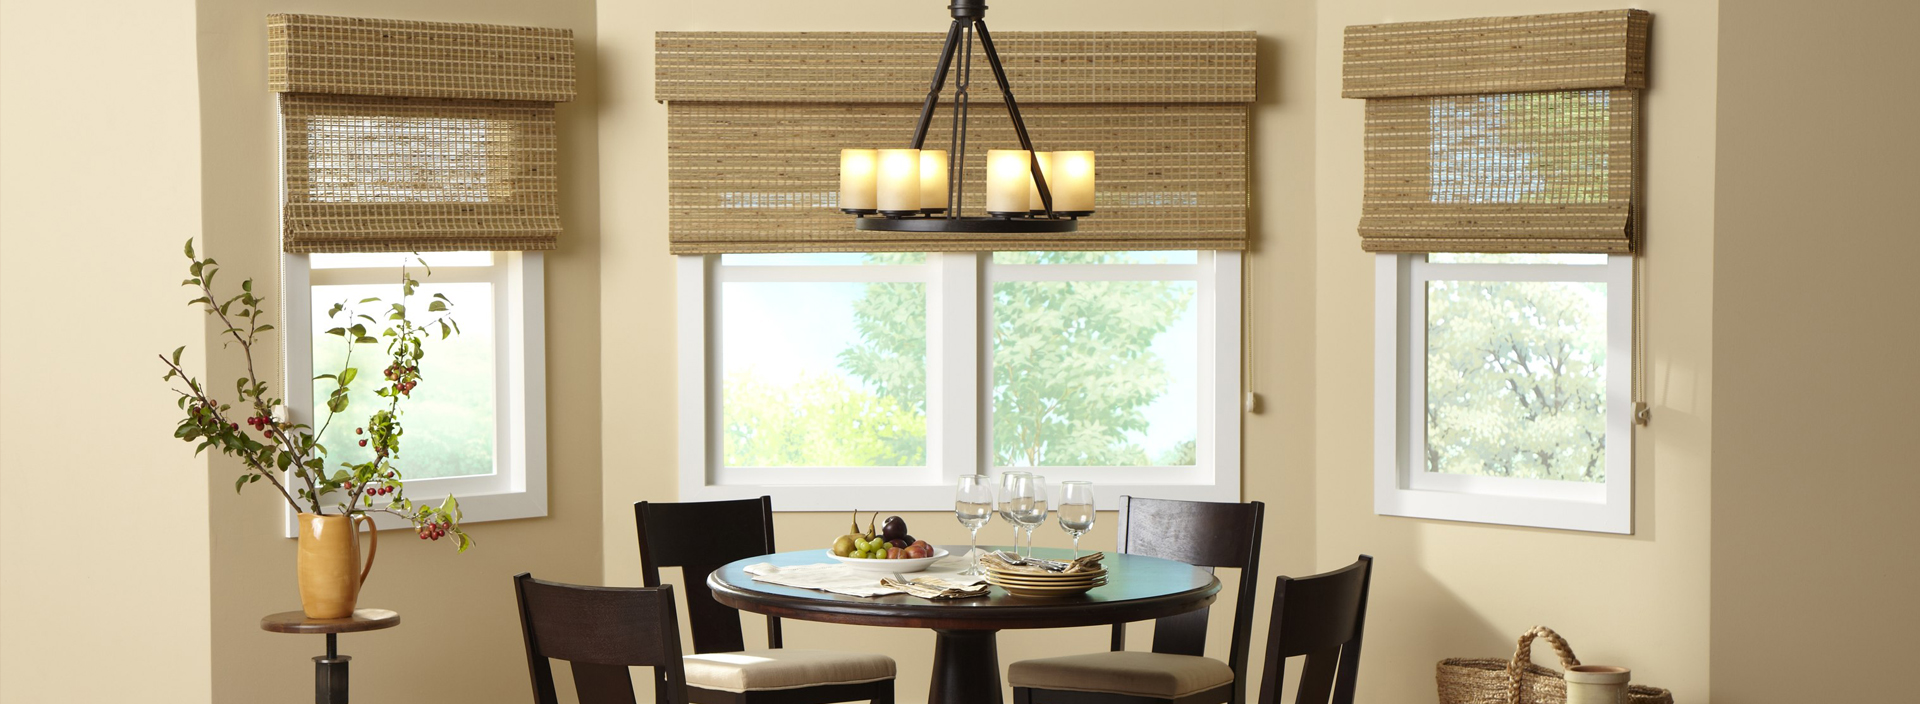 Woven Wood Cre8tive Blinds